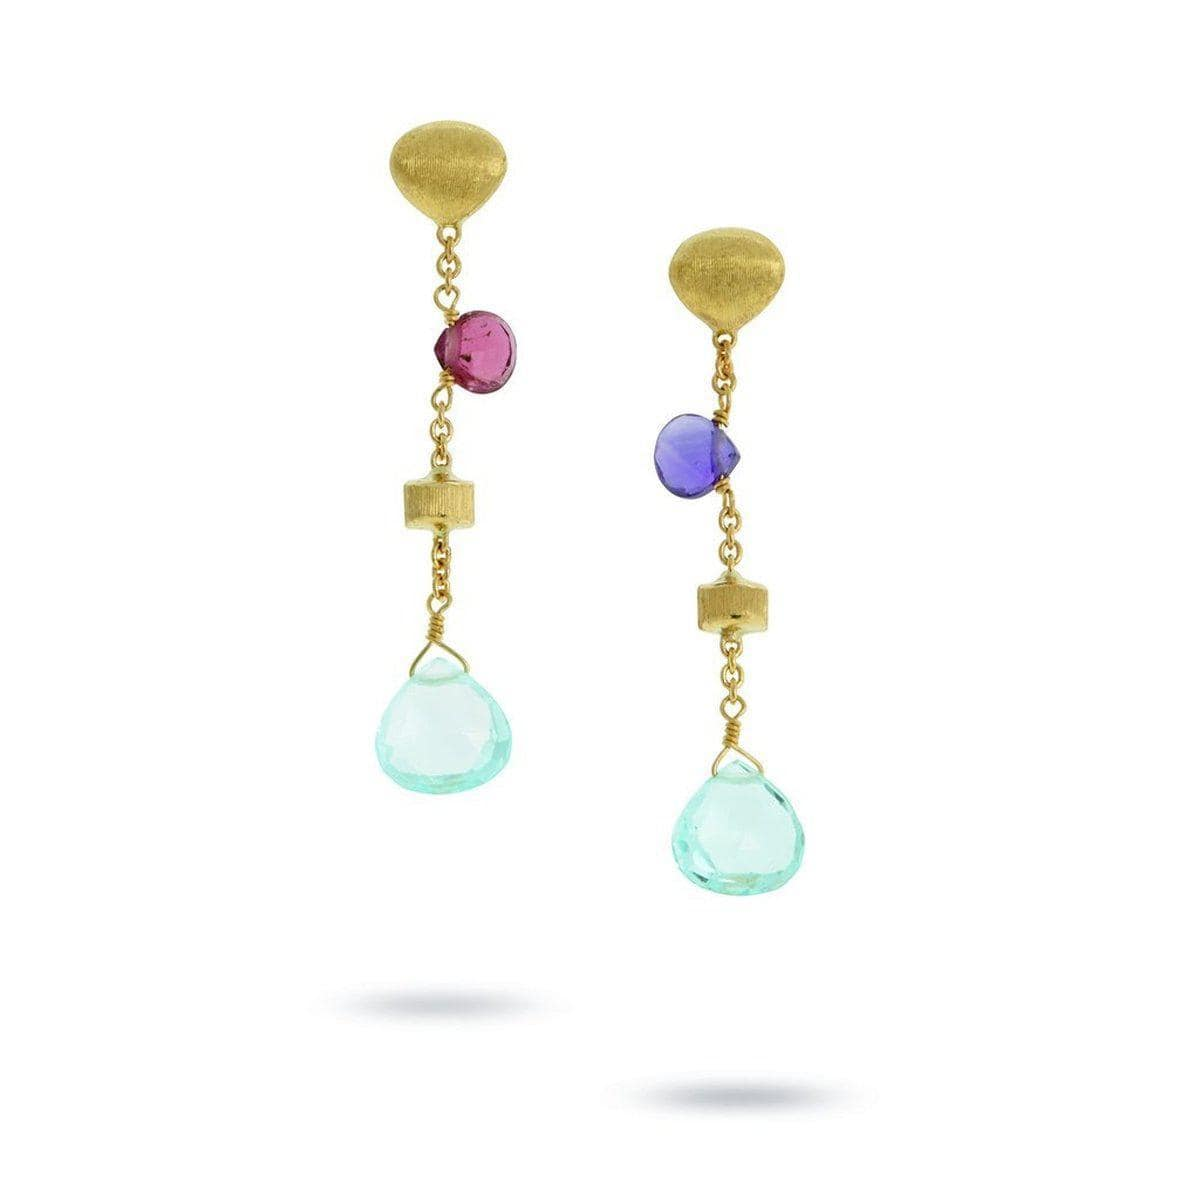 18K Paradise Earrings - OB1554 MIX109 Y-Marco Bicego-Renee Taylor Gallery